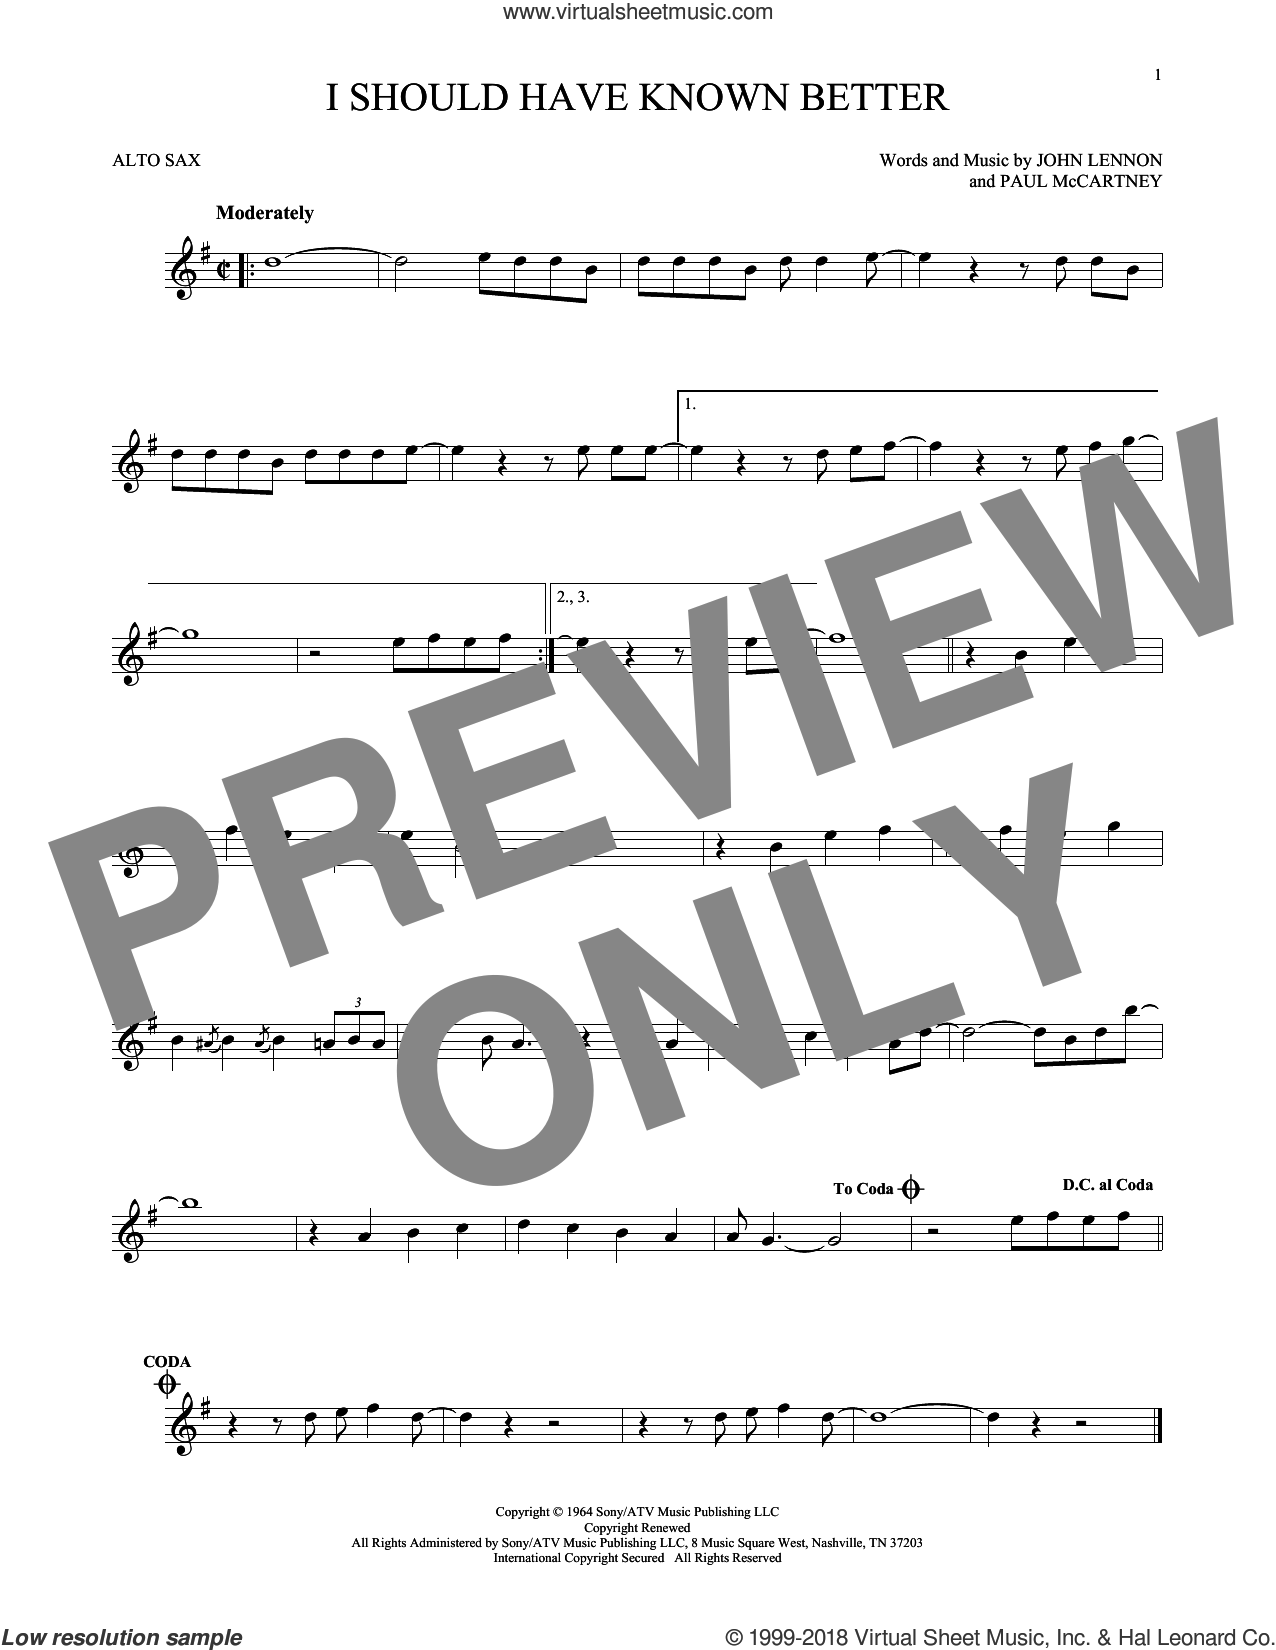 I Should Have Known Better sheet music for alto saxophone solo by The Beatles, John Lennon and Paul McCartney, intermediate. Score Image Preview.